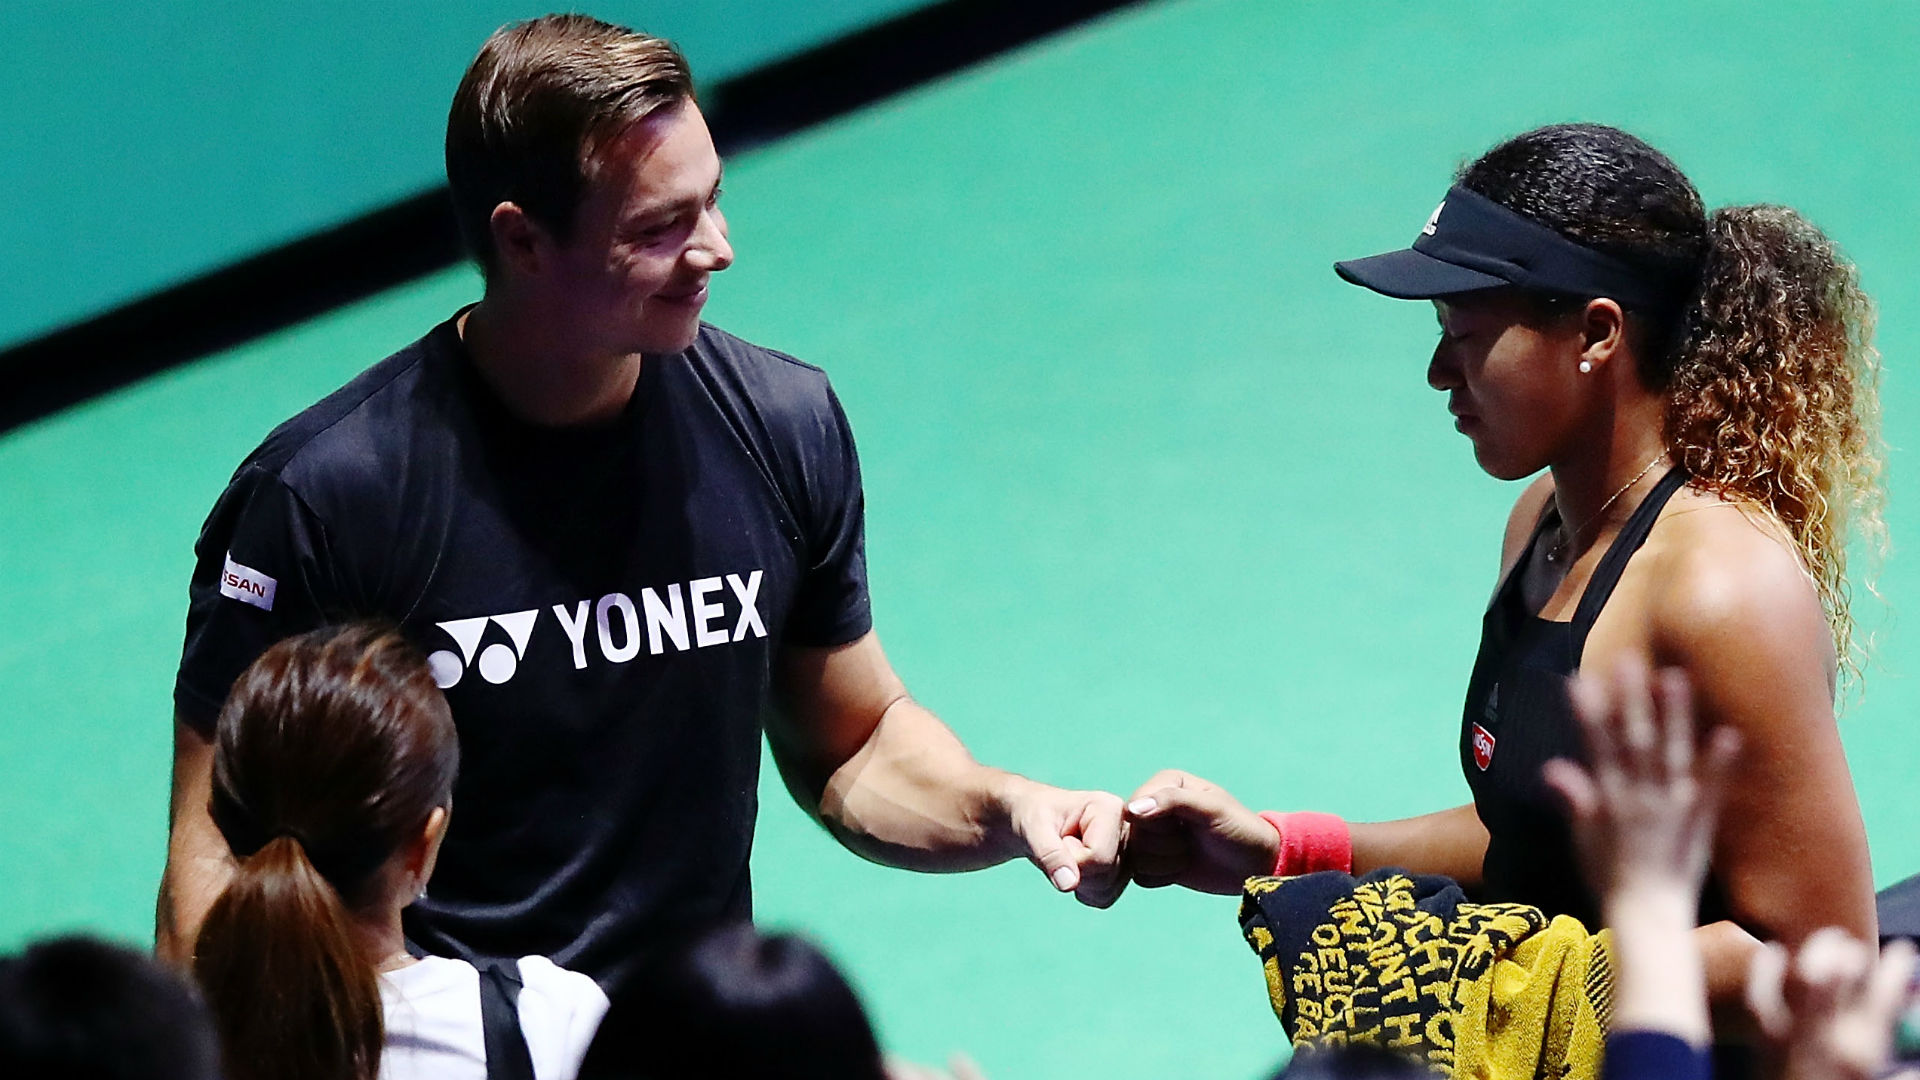 After steering Naomi Osaka to a breakthrough year and grand slam glory, her coach Sascha Bajin has earned recognition from the WTA.